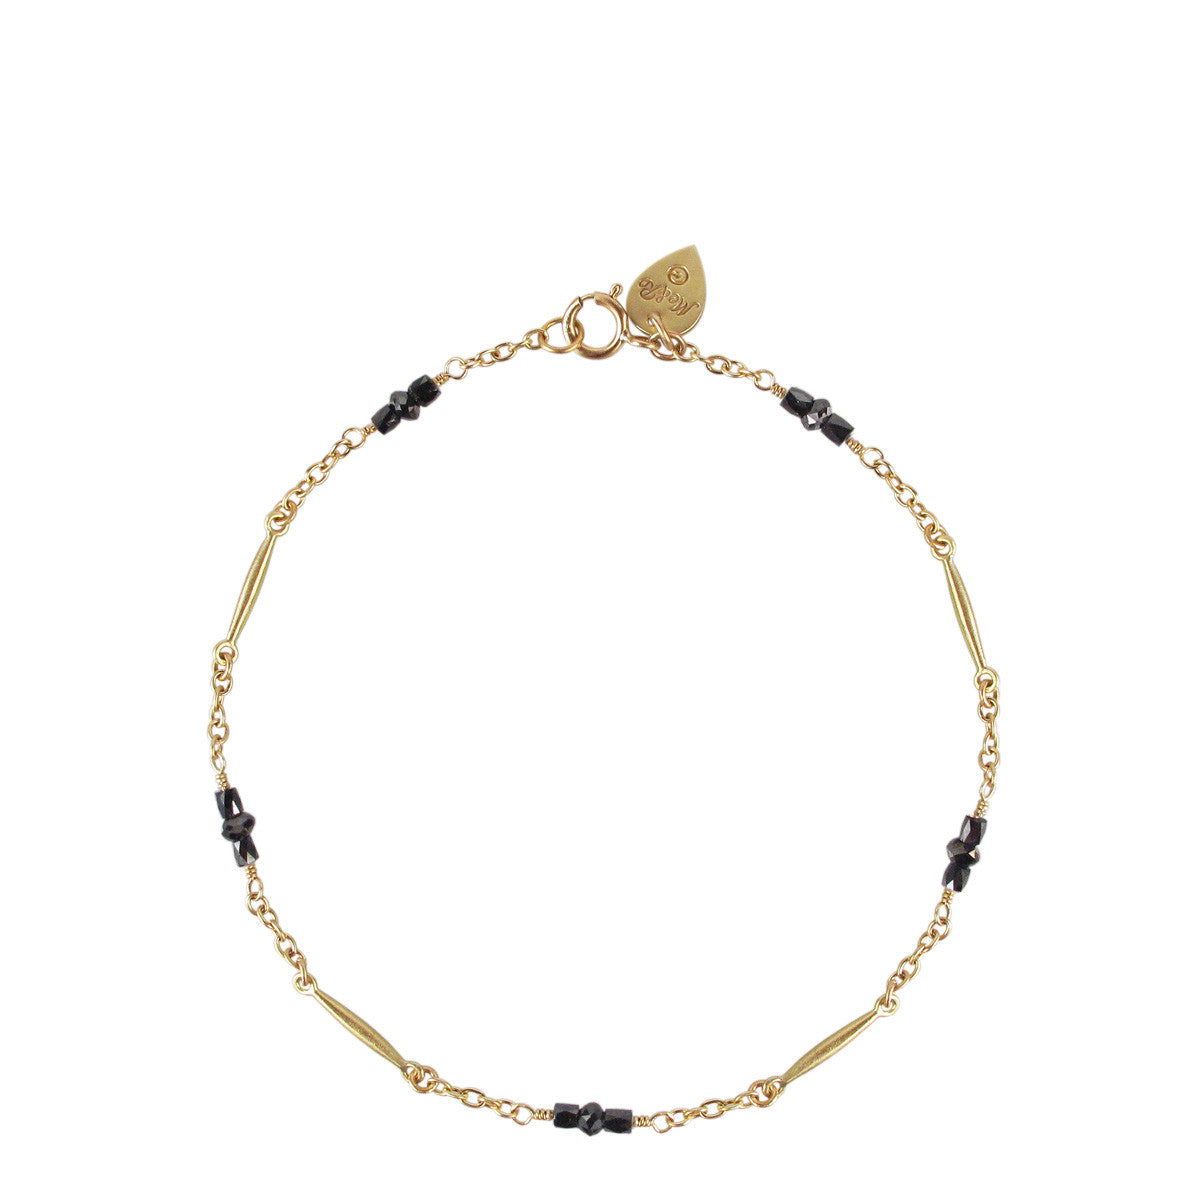 18K Gold Lure Bracelet with Black Diamonds